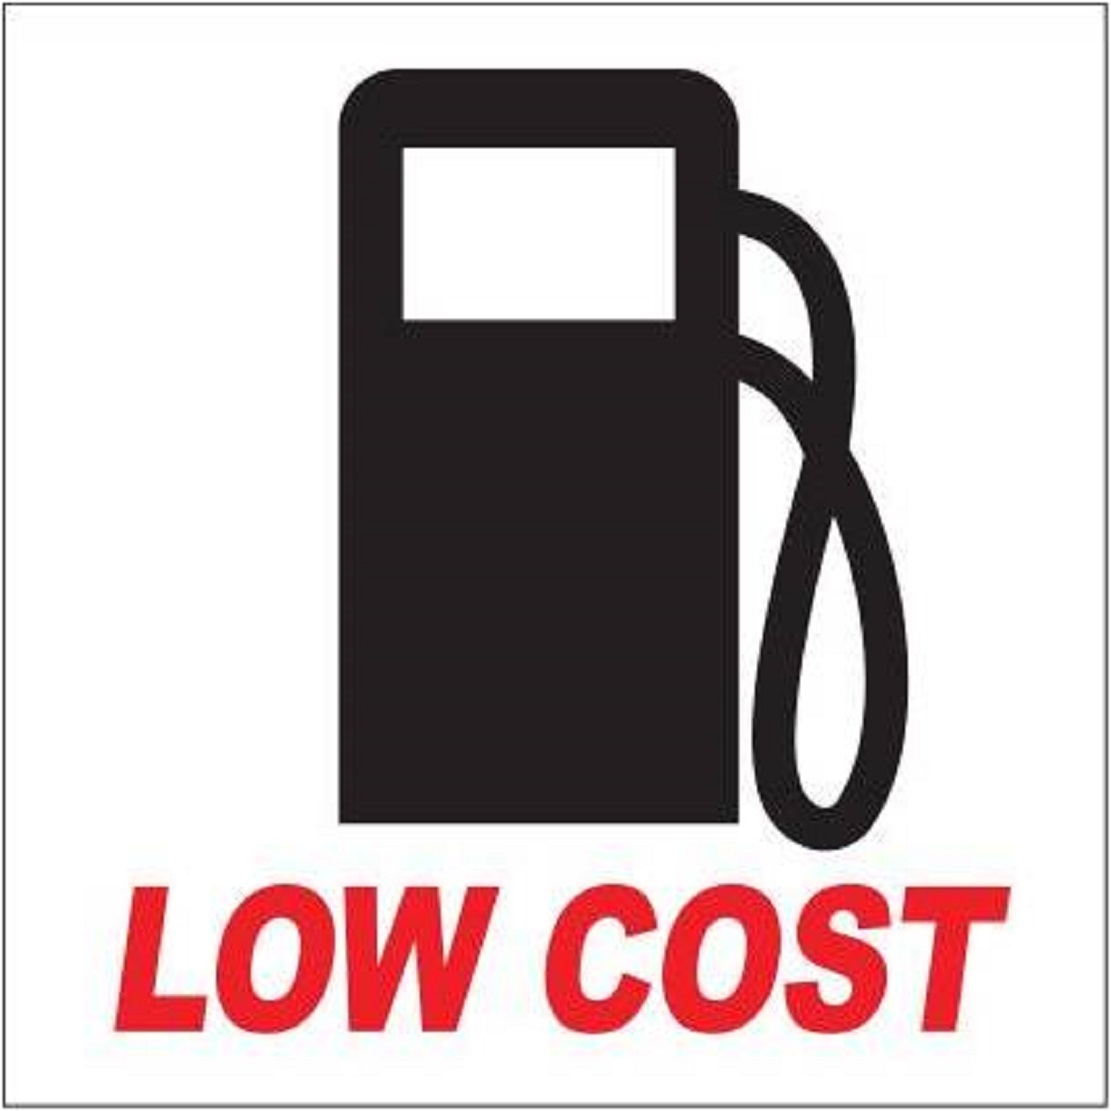 Coche lowcostgasolinera for Lavatrice low cost